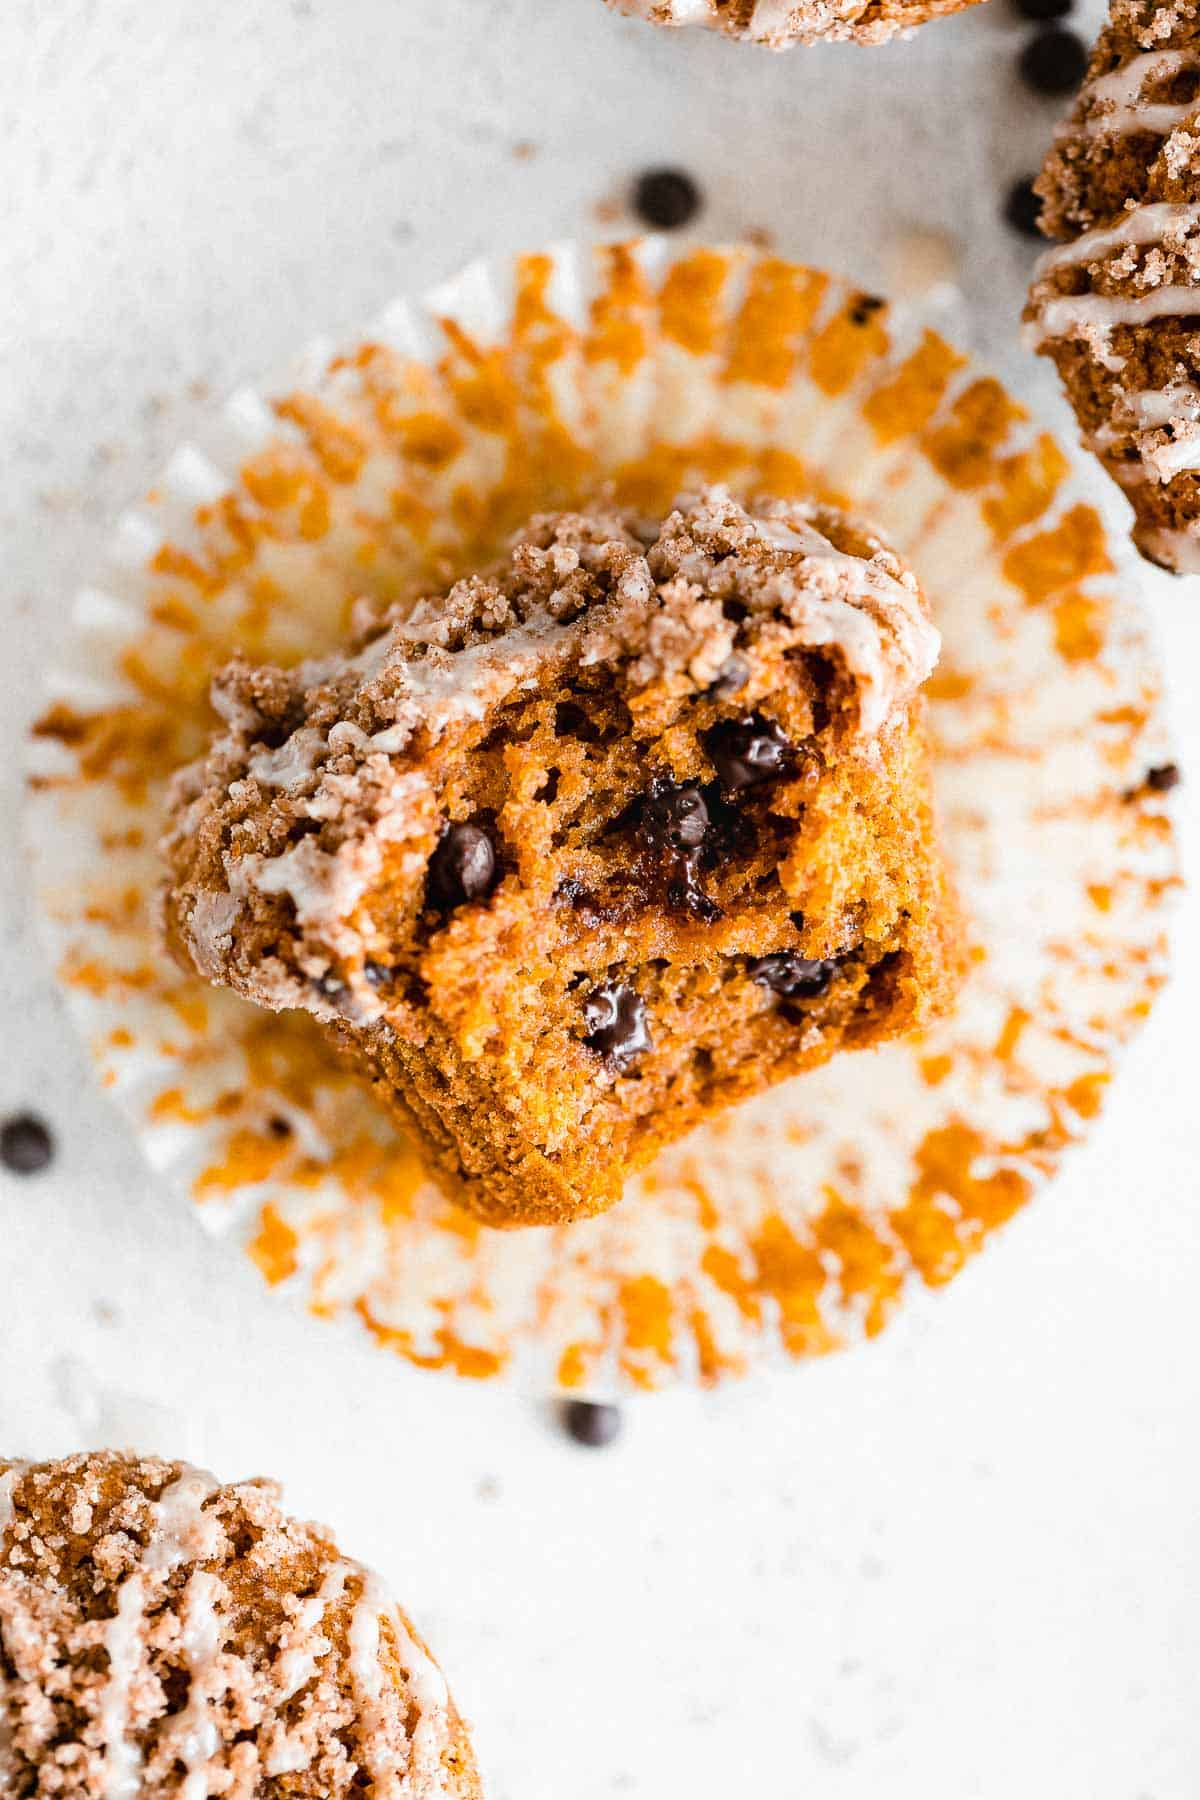 gluten free pumpkin muffins with chocolate chips and cinnamon streusel